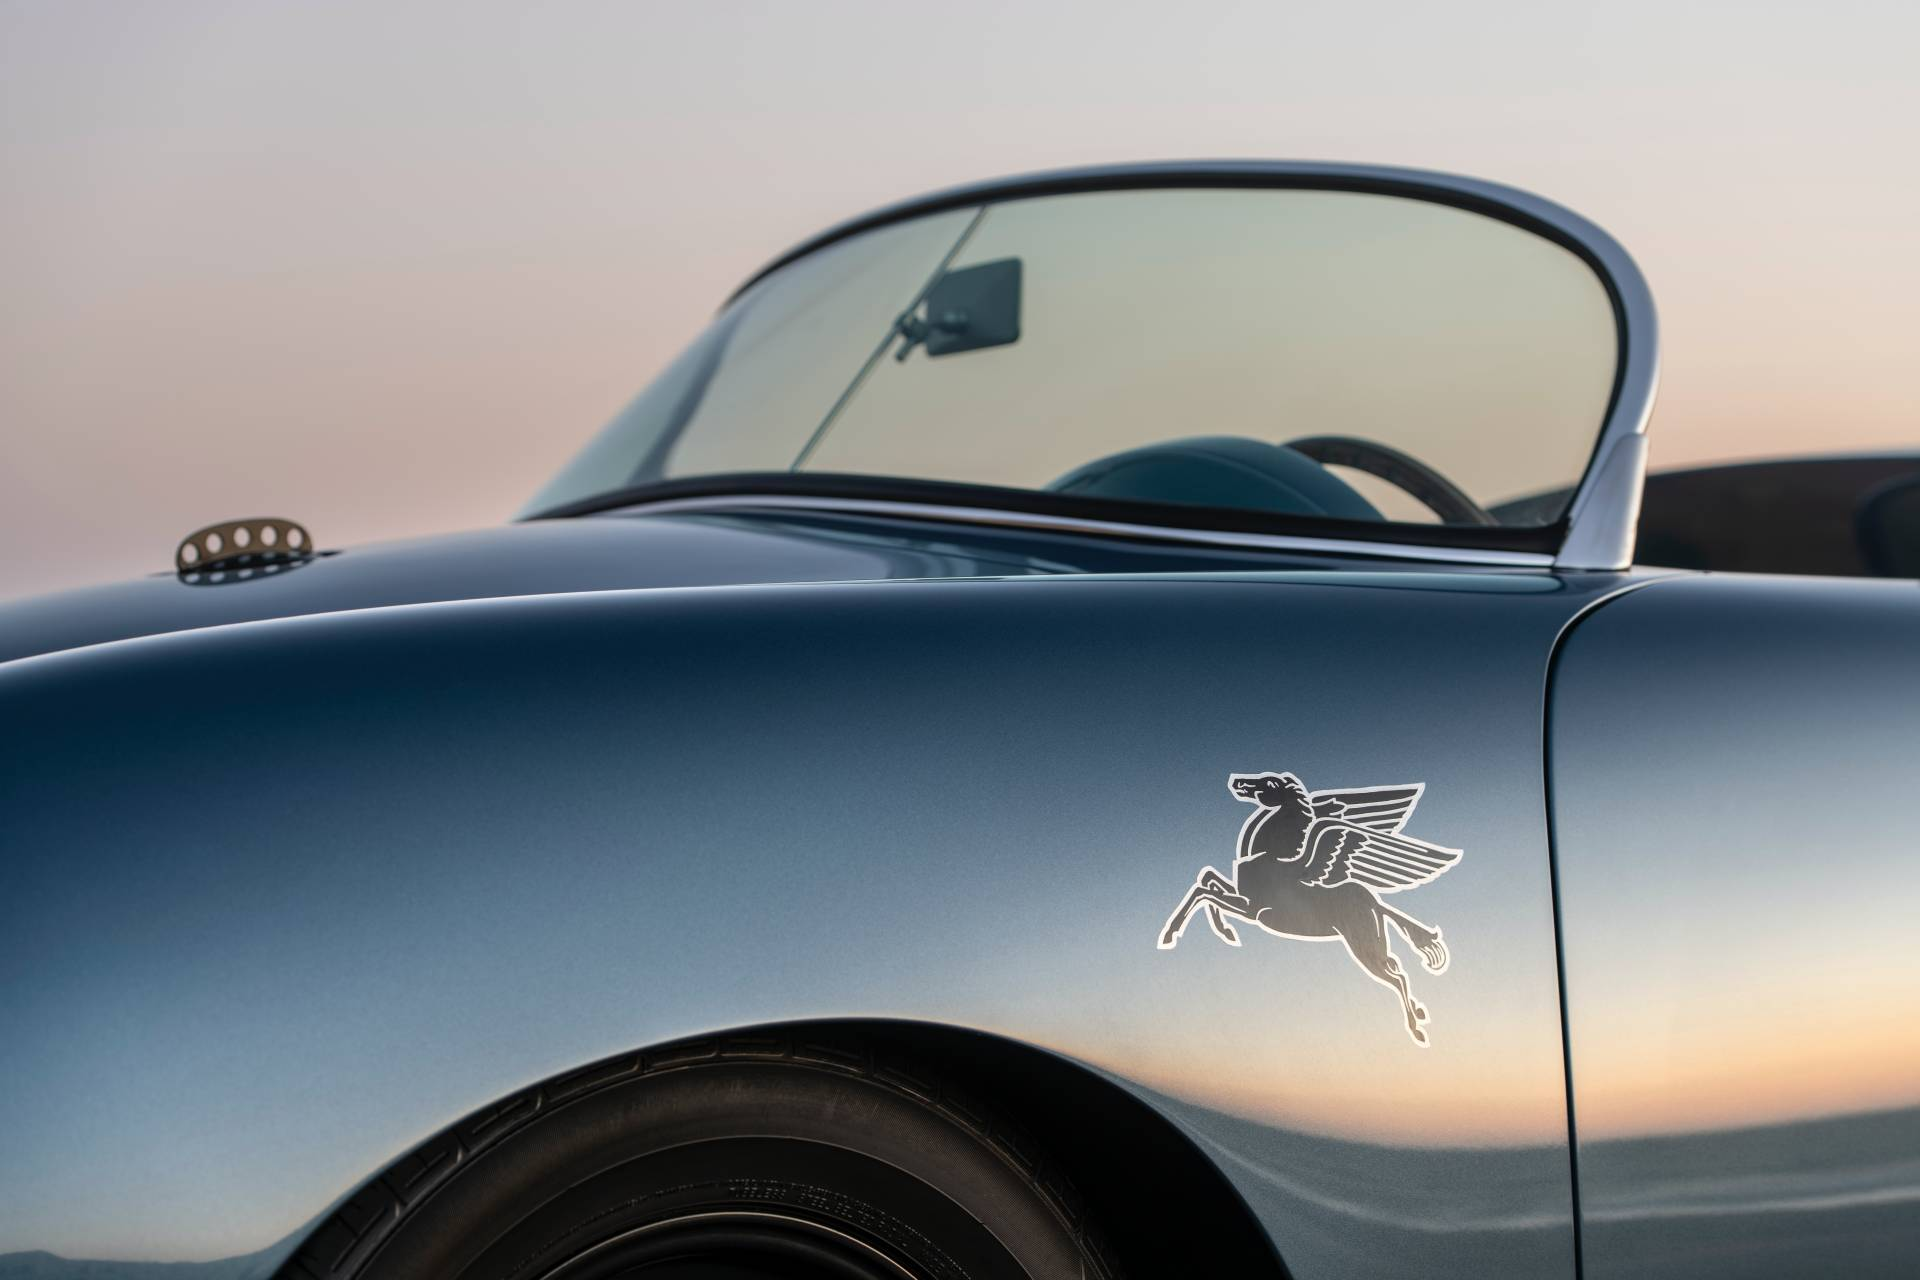 Porsche-356-Speedster-1959-Aquamarine-Transitional-By-Emory-Motorsport-10